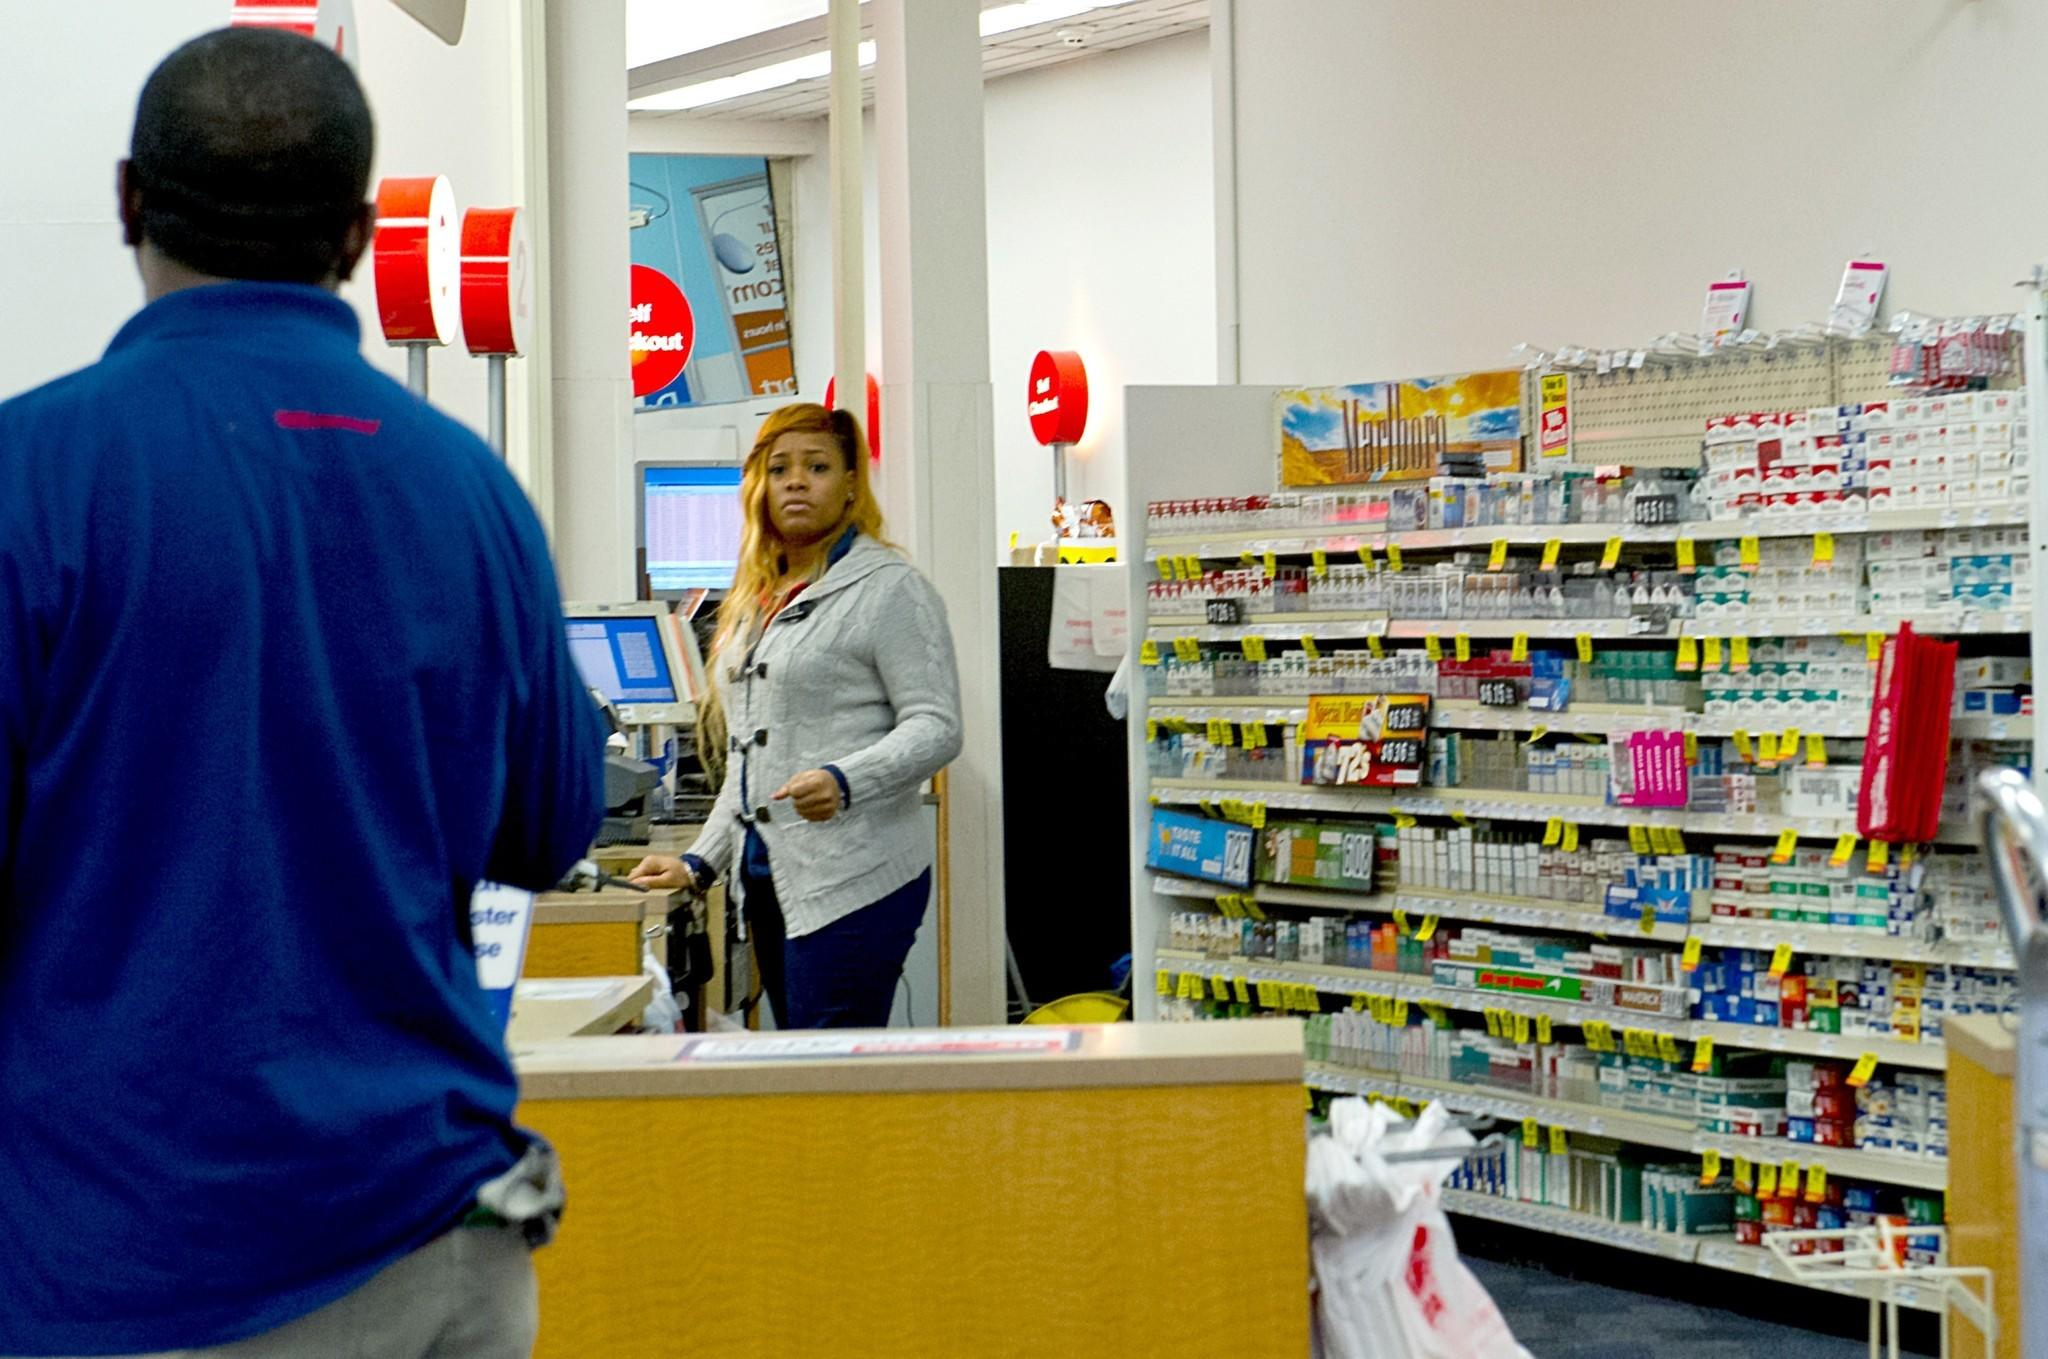 cvs stubs out tobacco s a step other companies should take a clerk mans the cigarette counter at a cvs drugstore in washington